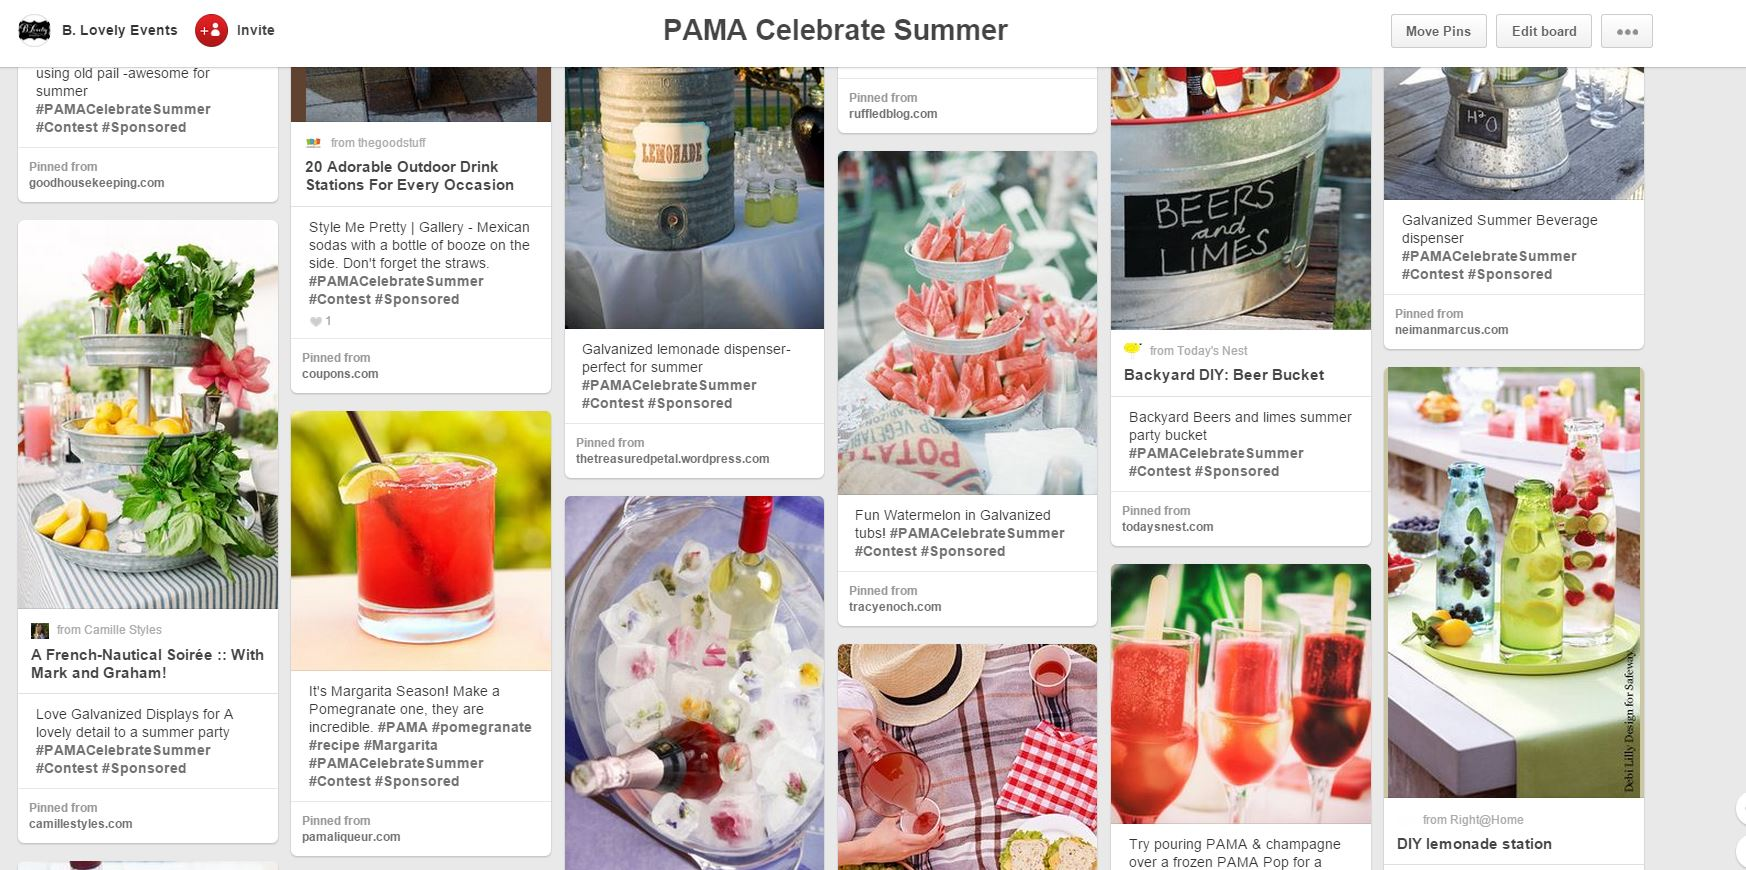 PAMA Celebrate Summer Board